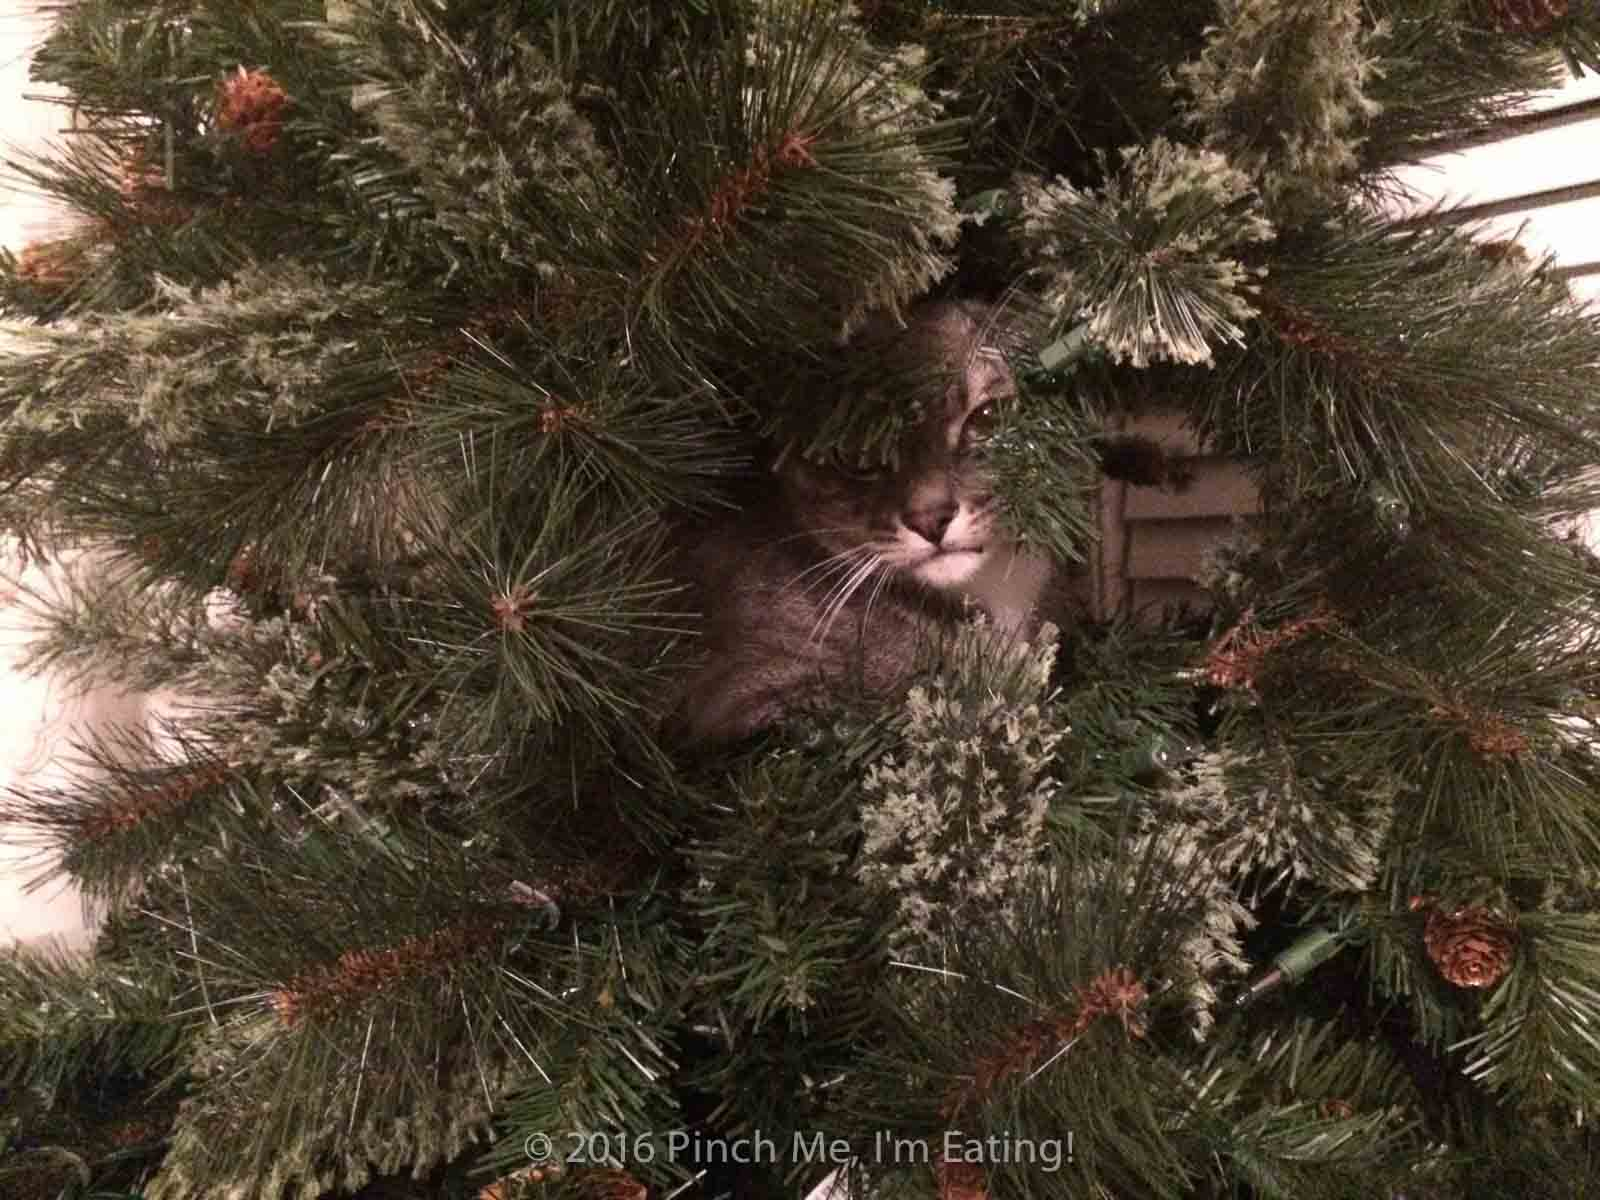 Gray cat hiding in Christmas tree